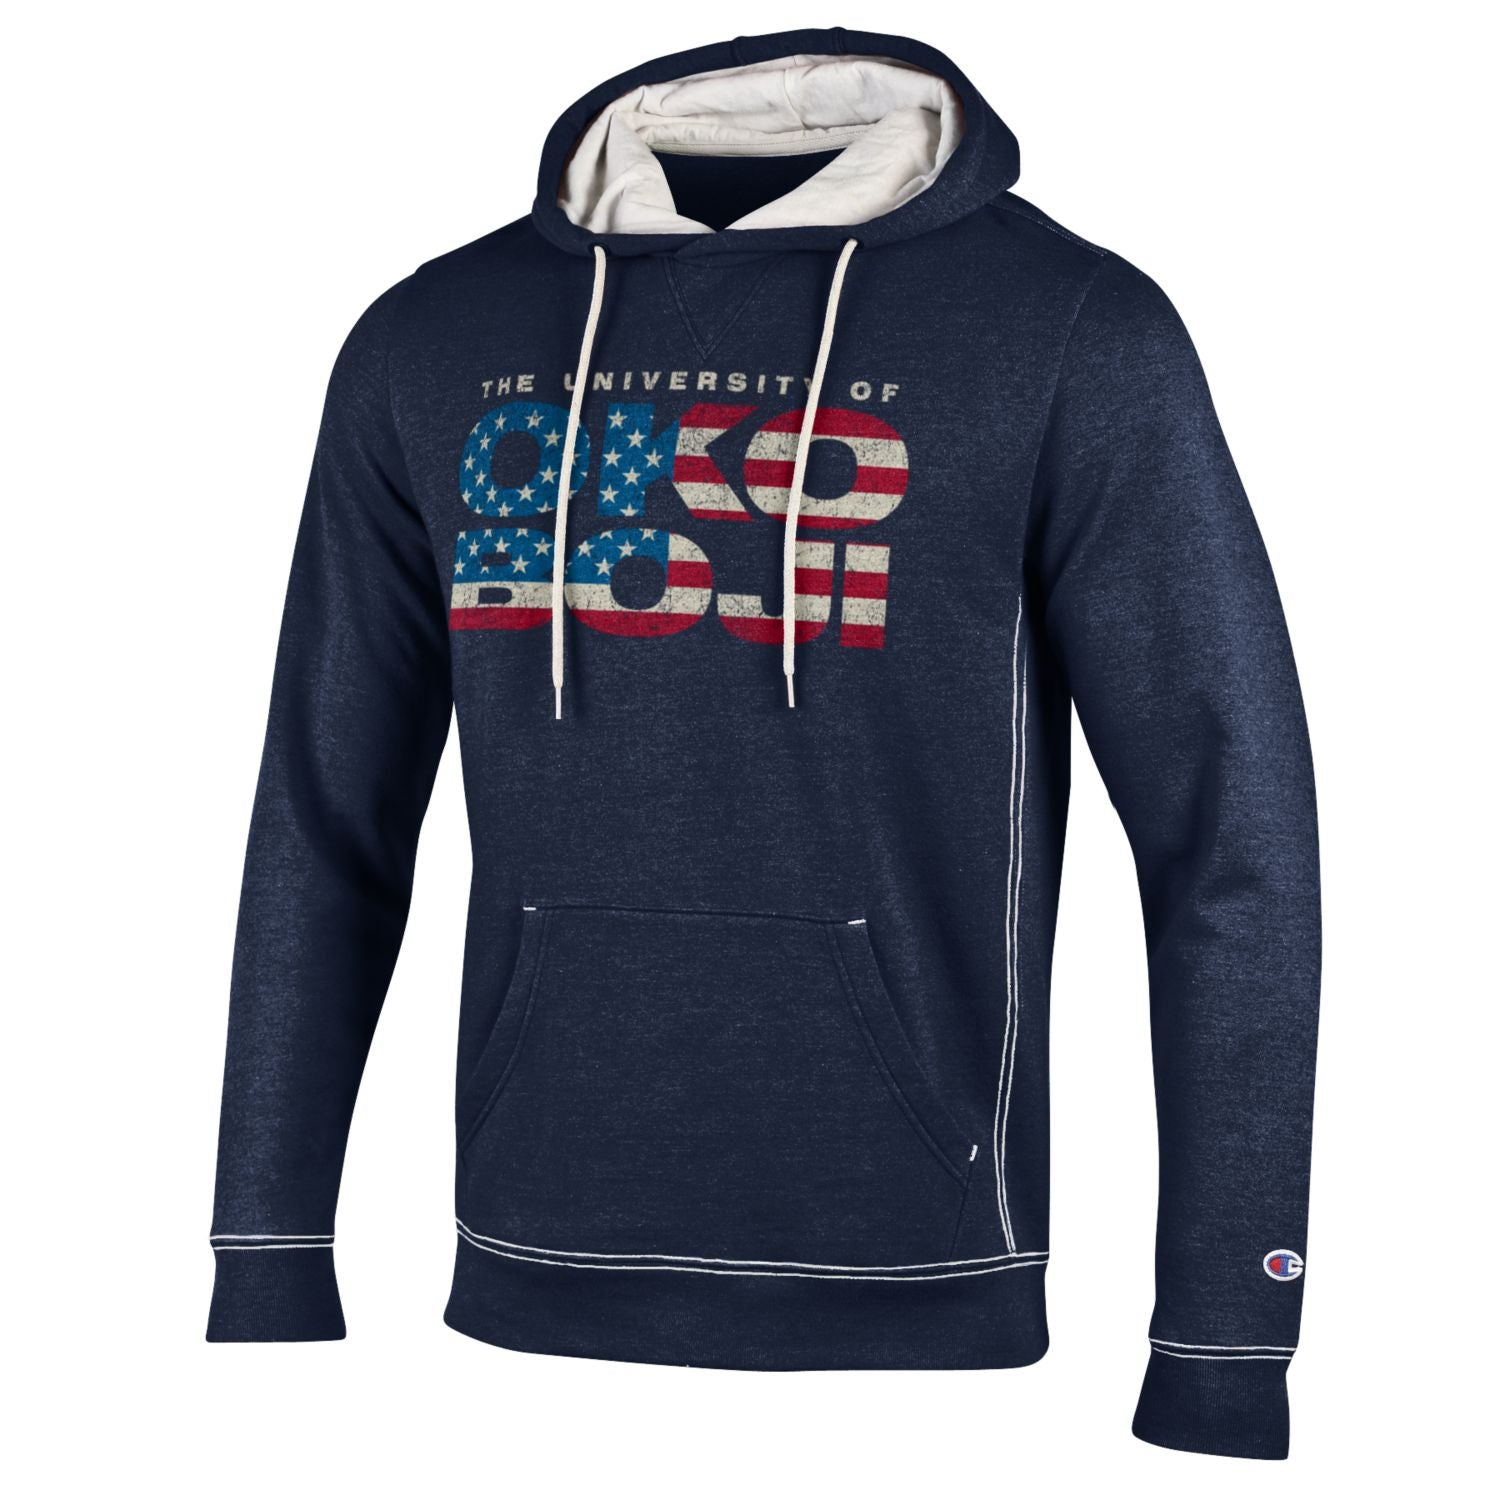 University of Okoboji Stars and Stripes Navy Hoody